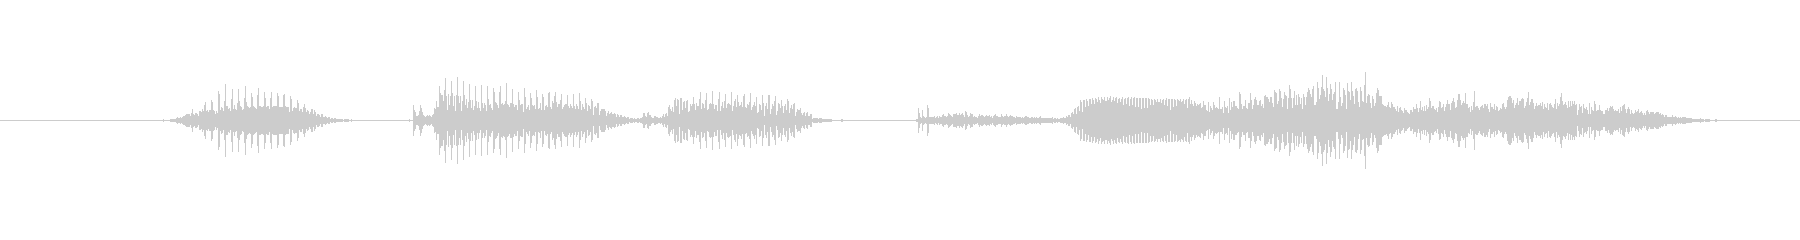 I will have 2 (female)'s unreproduced waveform